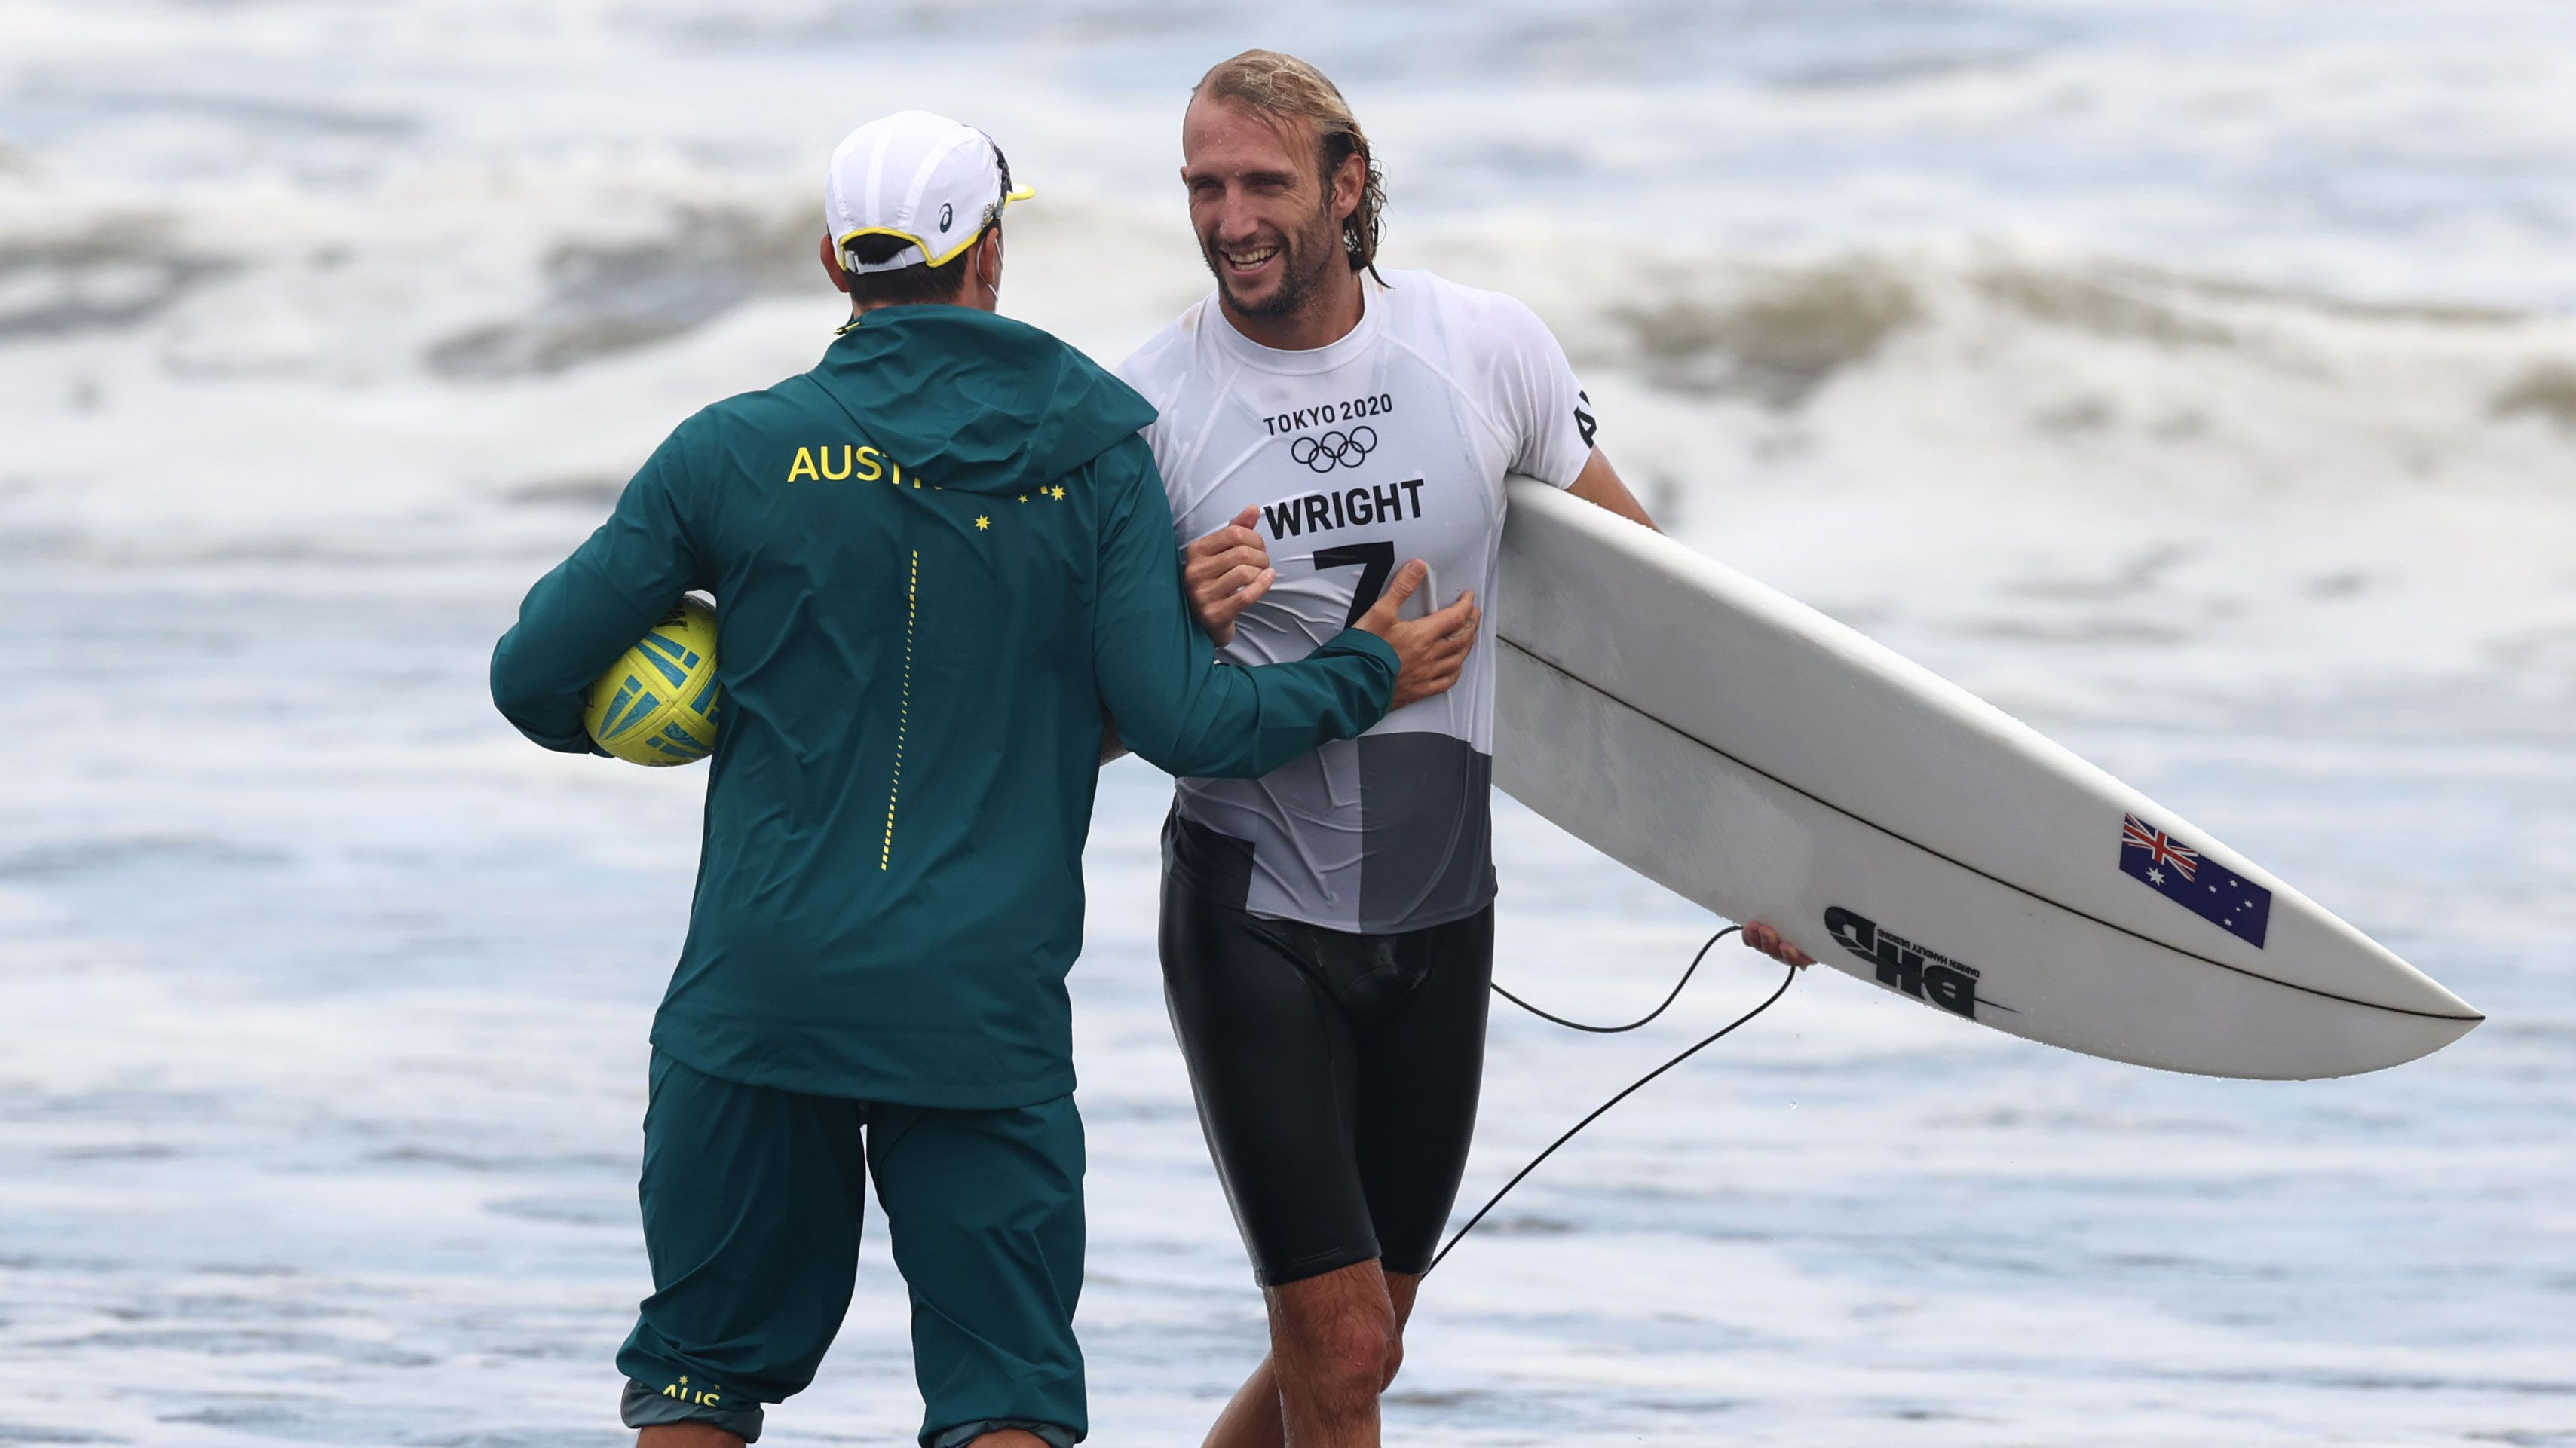 Owen Wright celebrates a victory in the Olympics surfing competition.